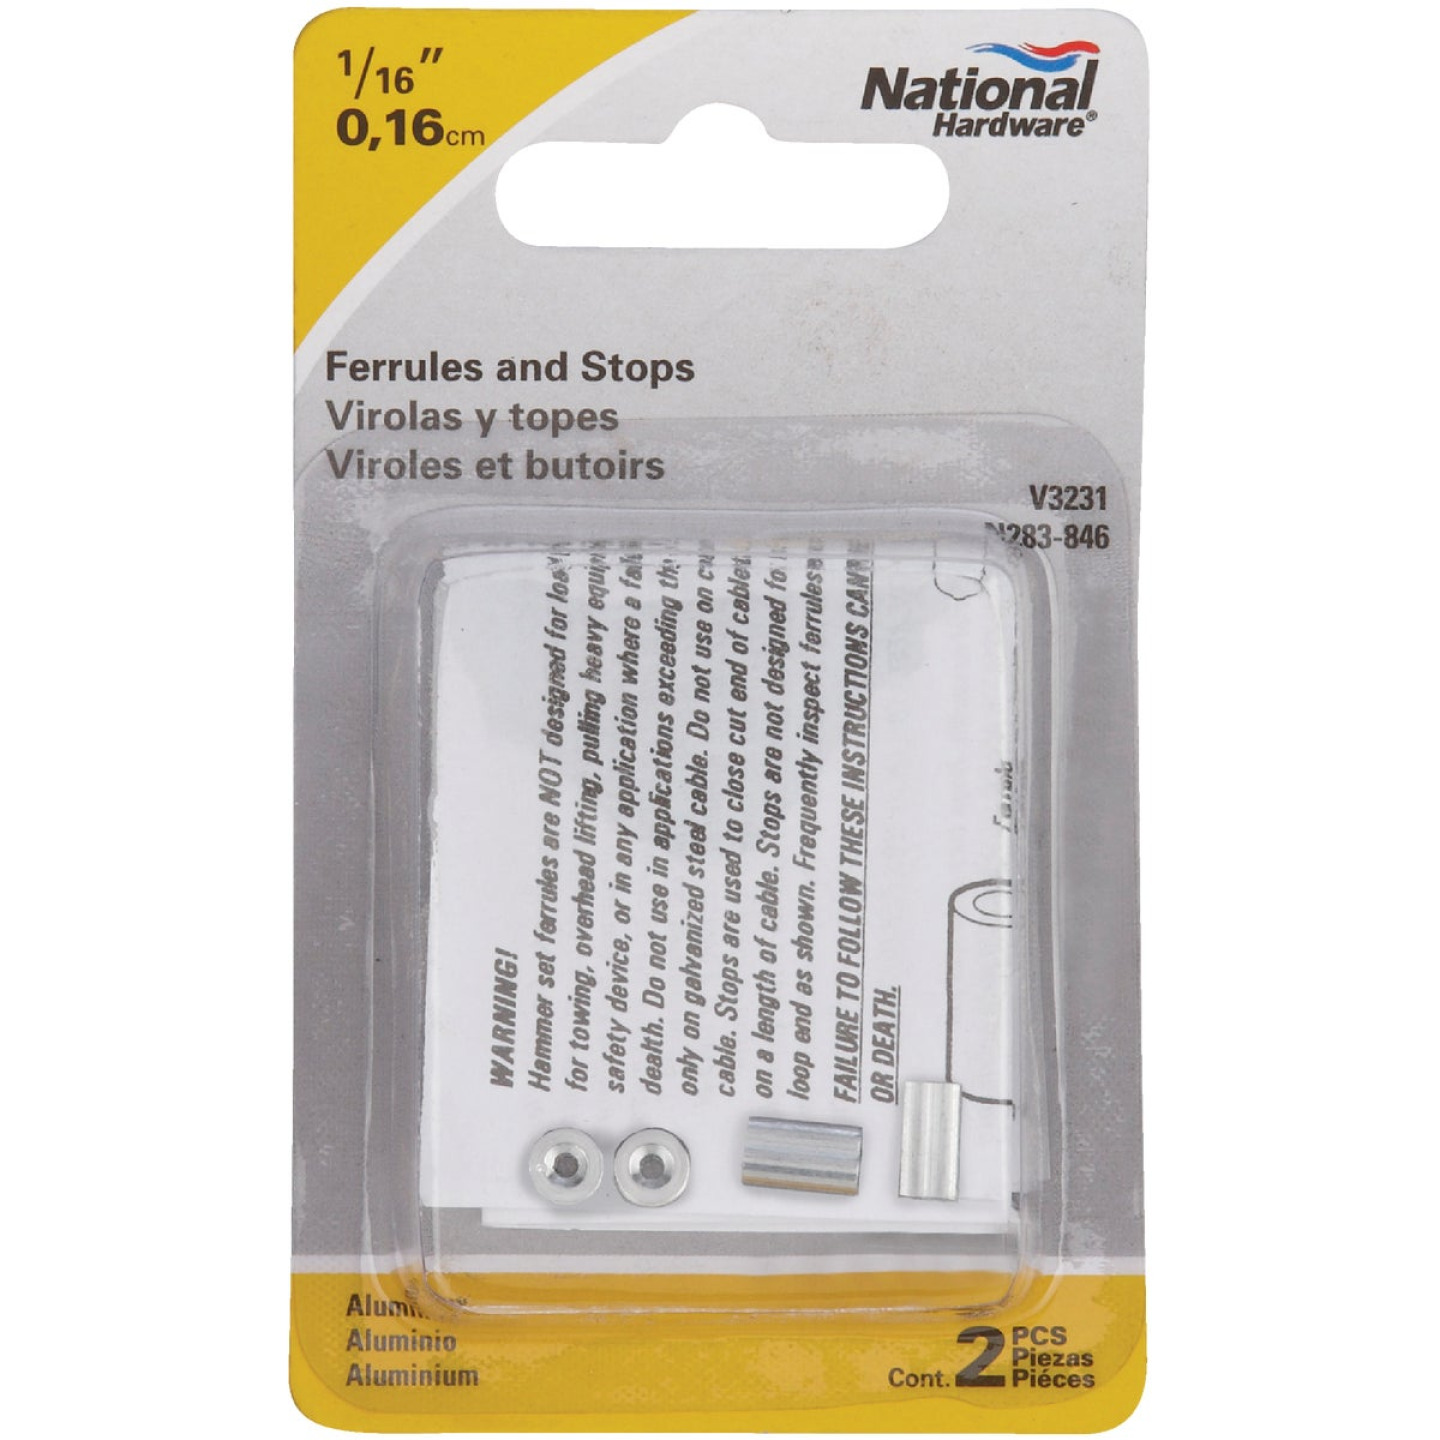 National 1/16 In. Aluminum Garage Door Ferrule & Stop Kit Image 2